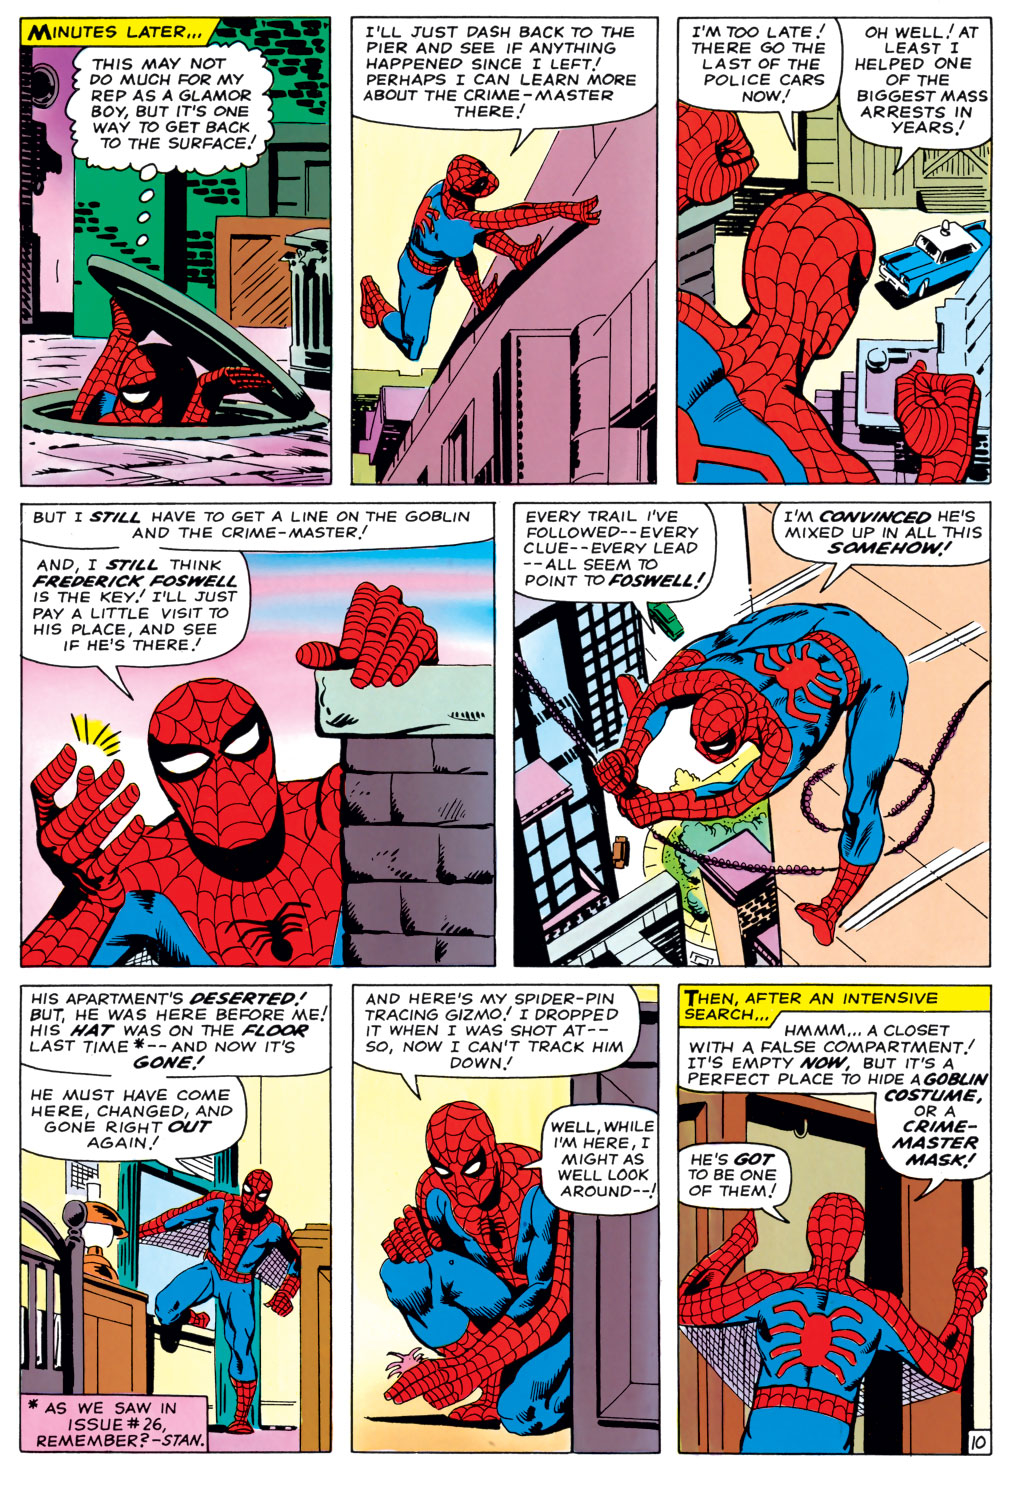 The Amazing Spider-Man (1963) 27 Page 10